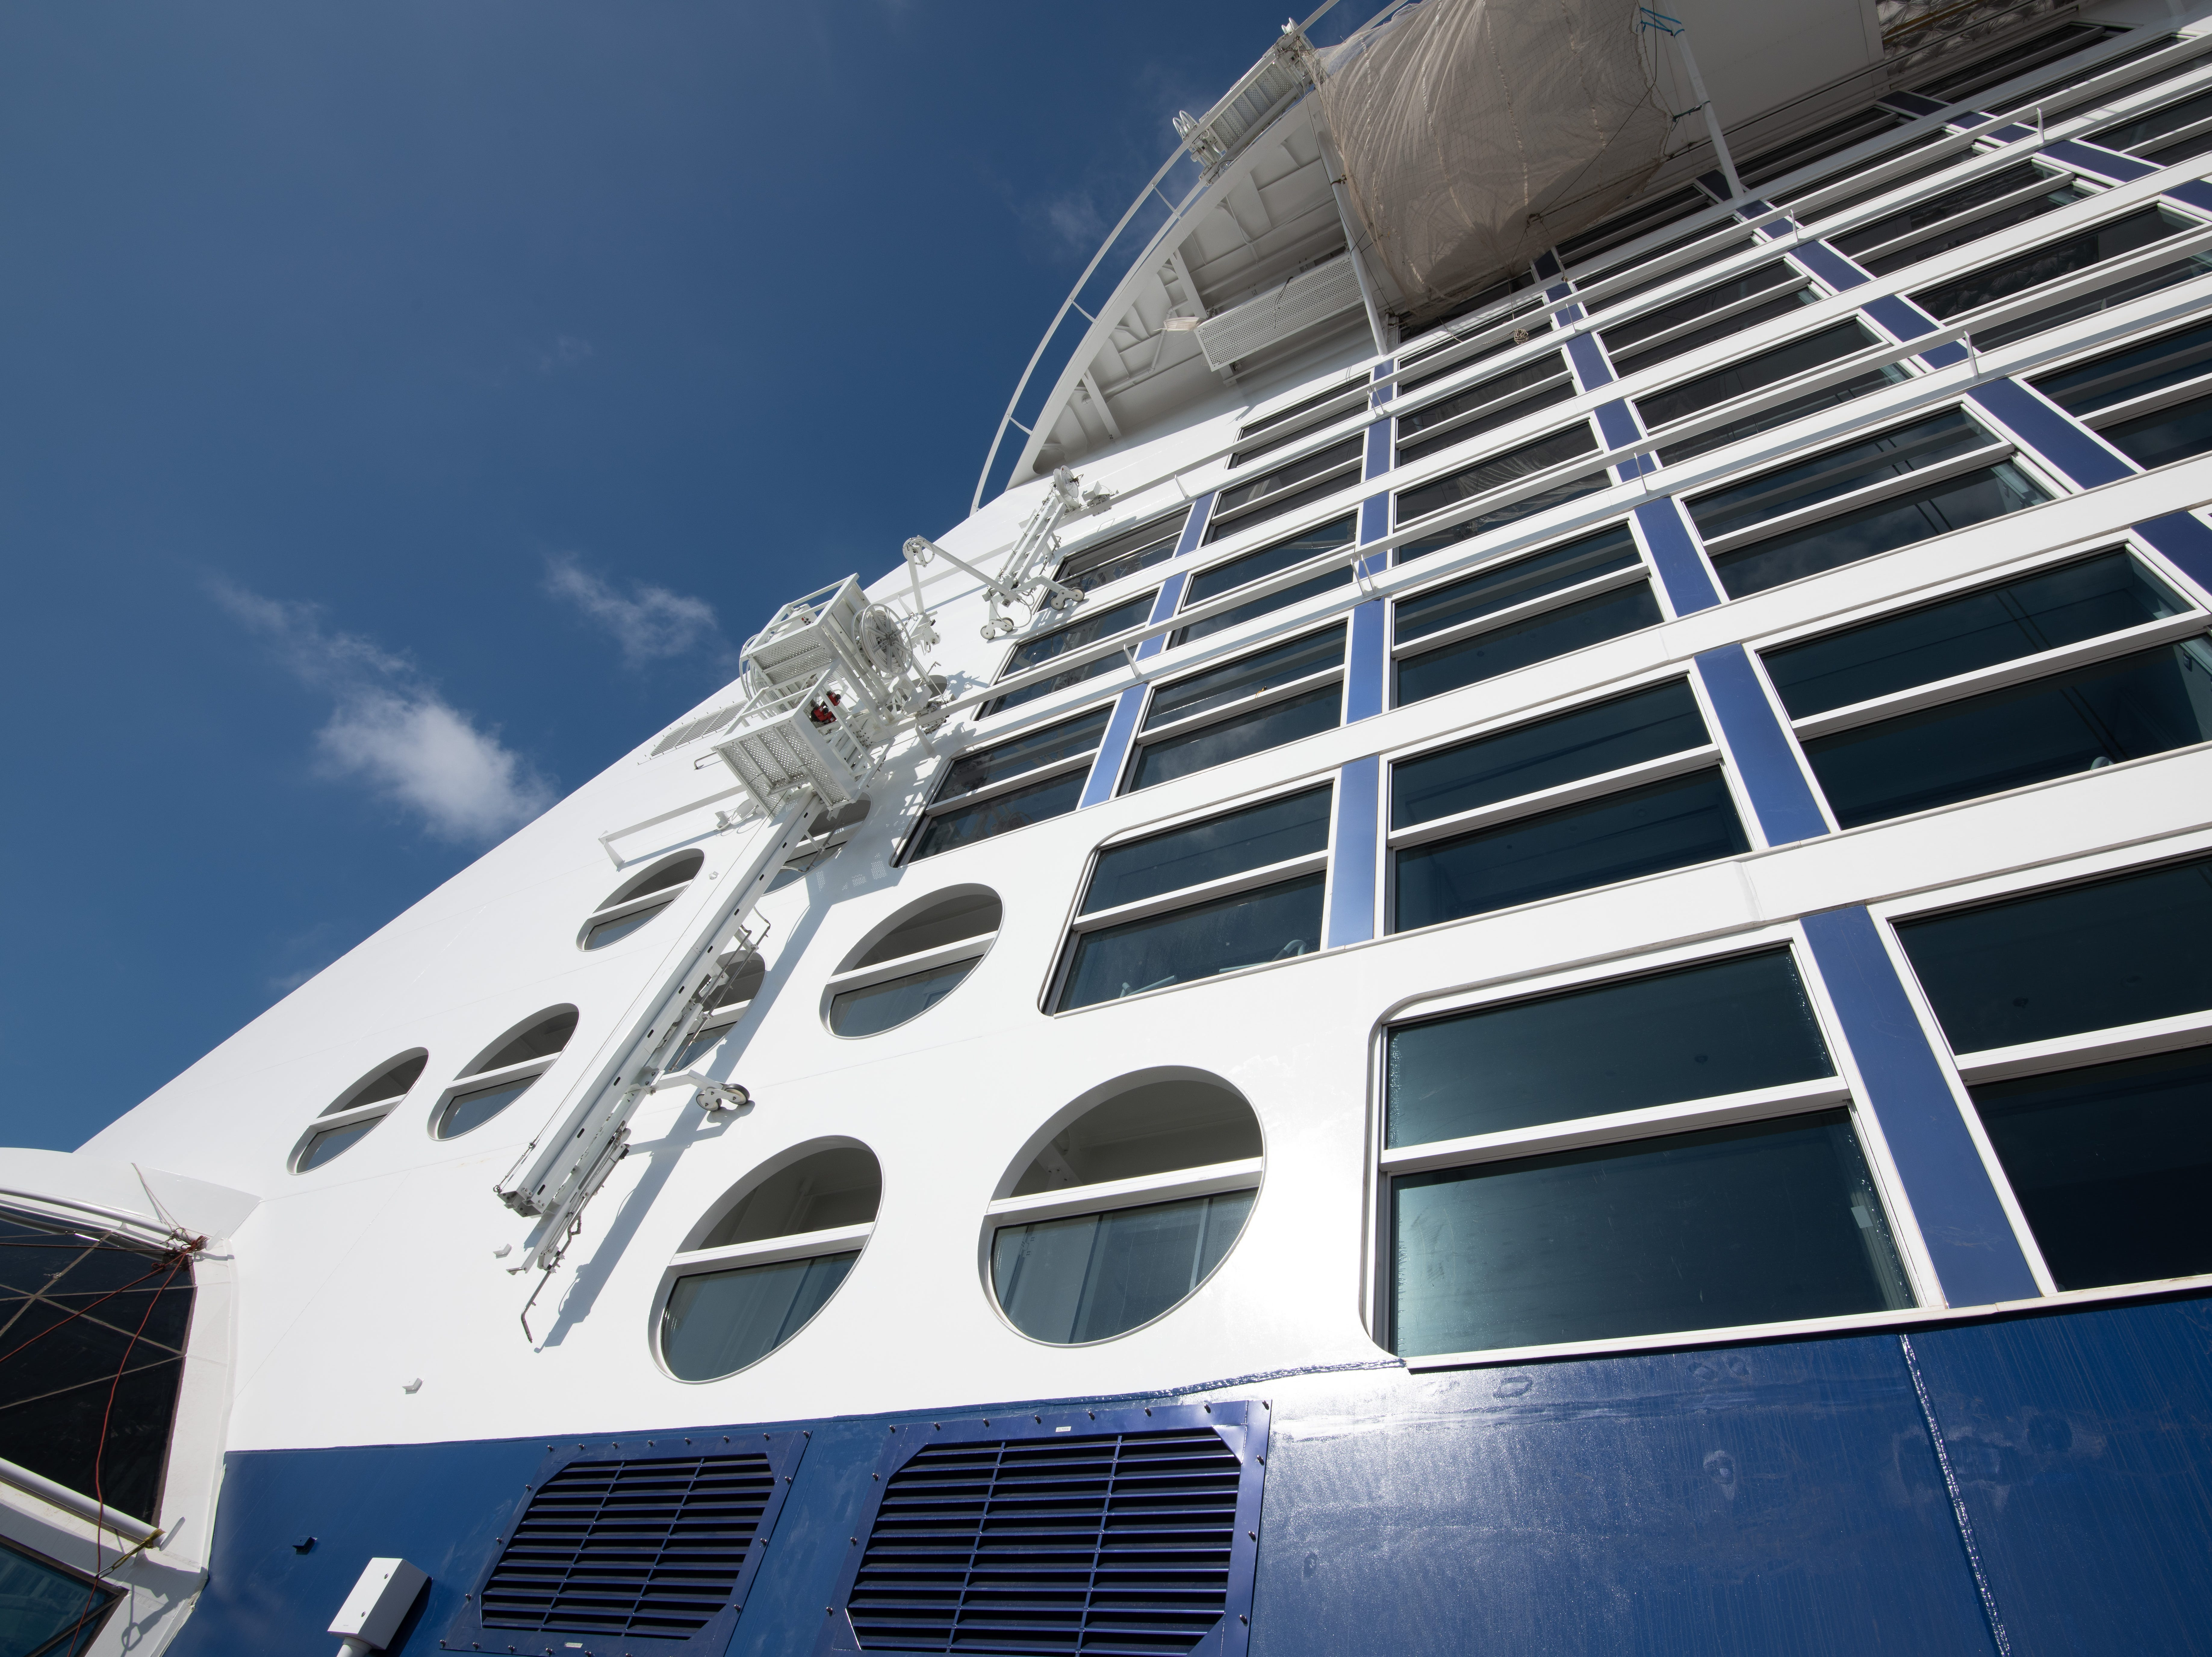 A detail of Celebrity Edge's exterior.